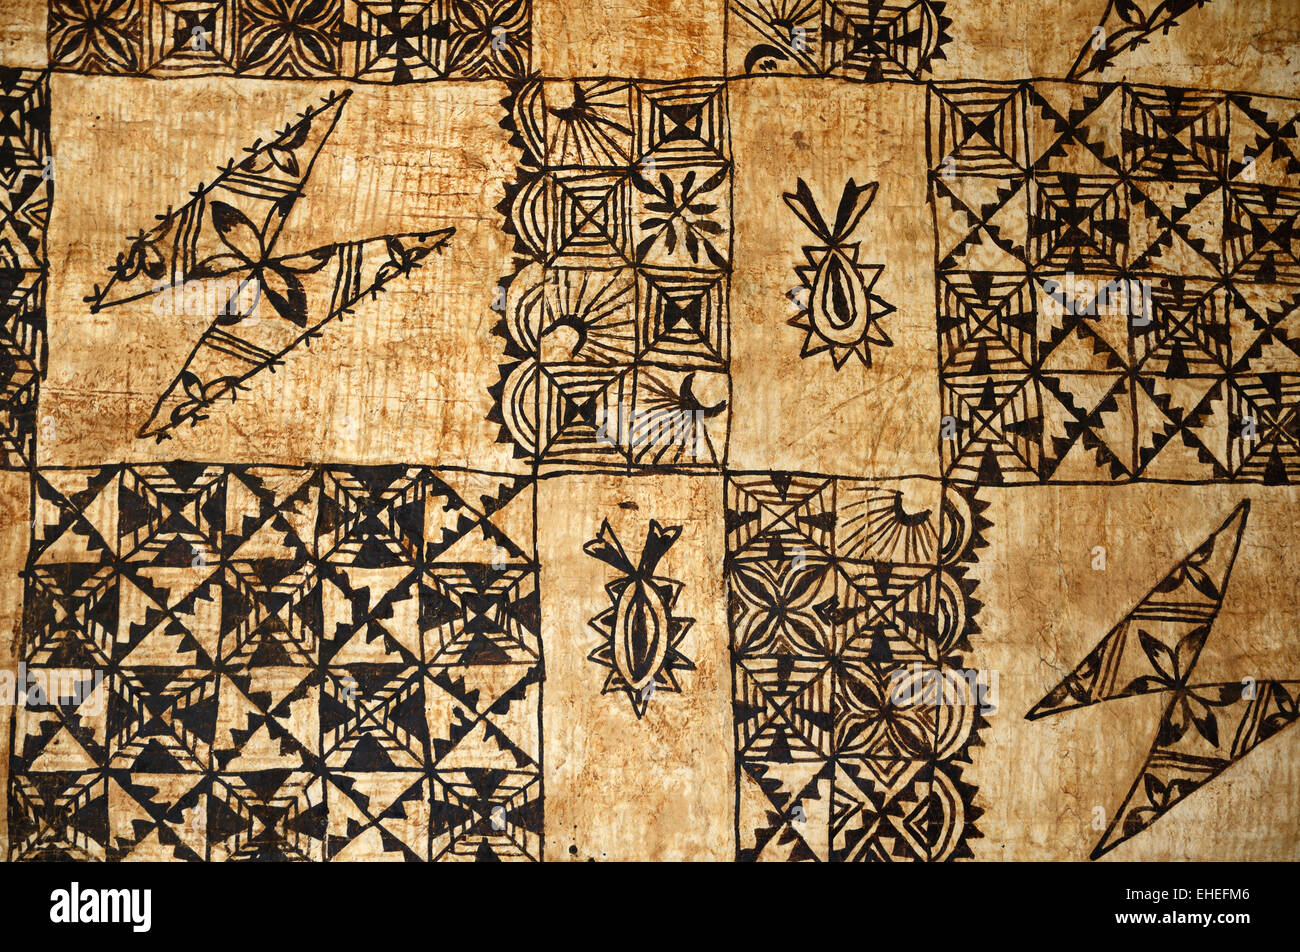 background of traditional Pacific Island tapa cloth, a barkcloth made primarily in Tonga, Samoa and Fiji - Stock Image